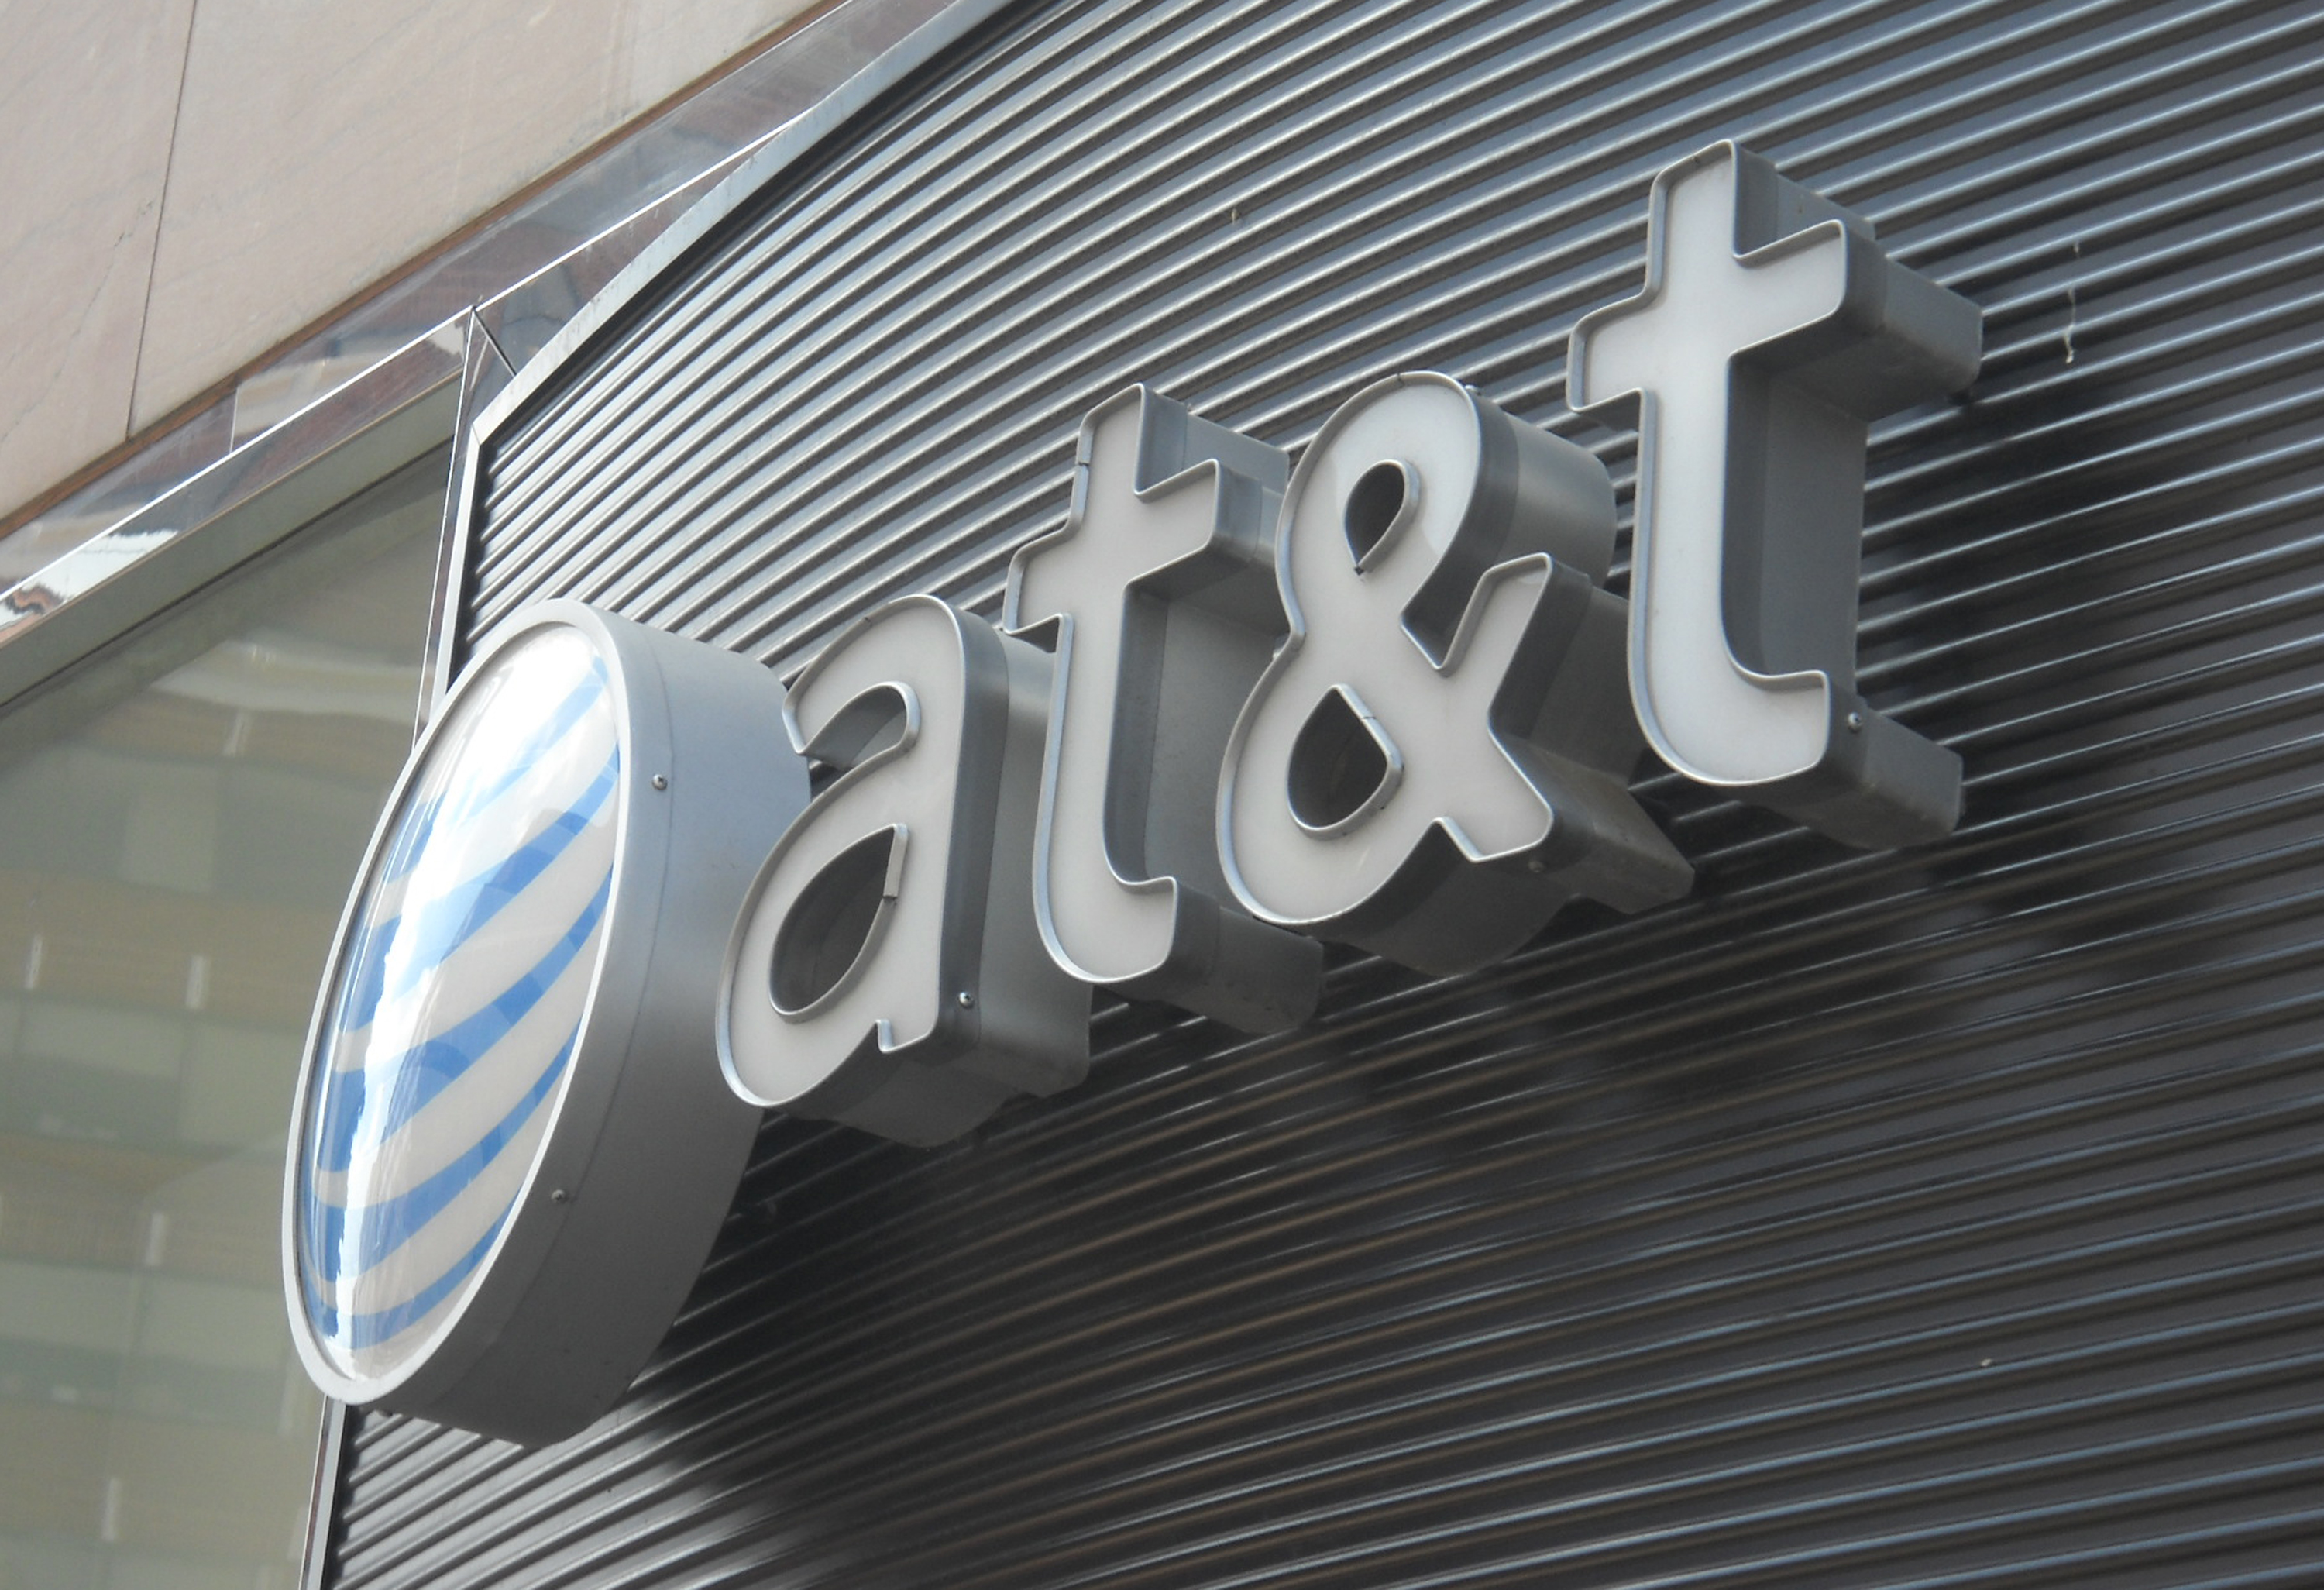 AT&T's new financing options could make owning a phone more difficult